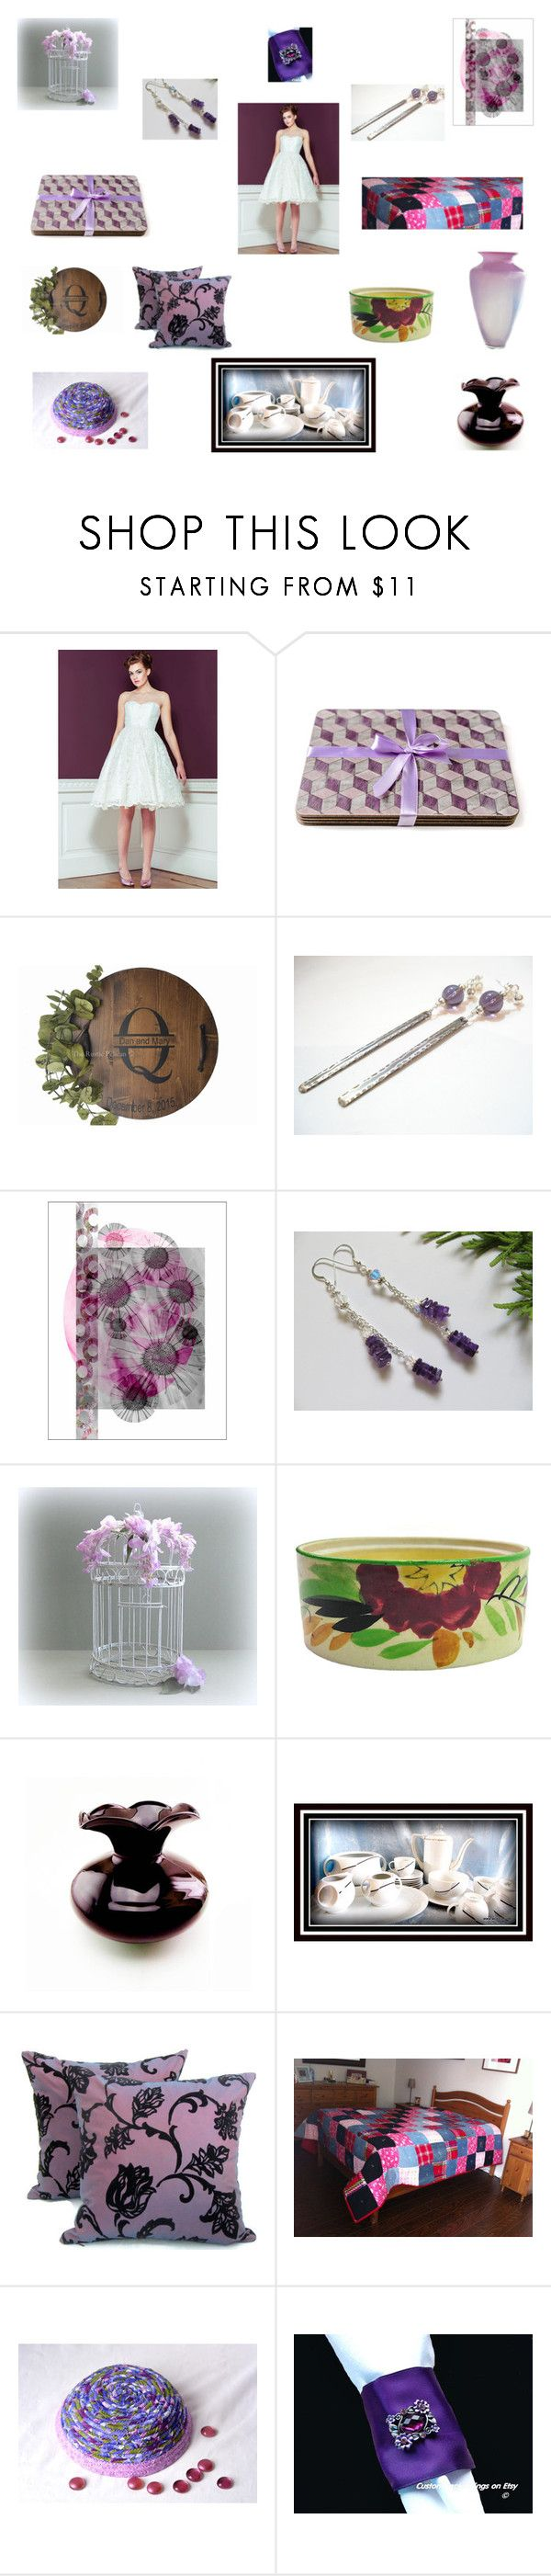 """""""Retro Wedding Gift Ideas"""" by einder ❤ liked on Polyvore featuring interior, interiors, interior design, home, home decor and interior decorating"""